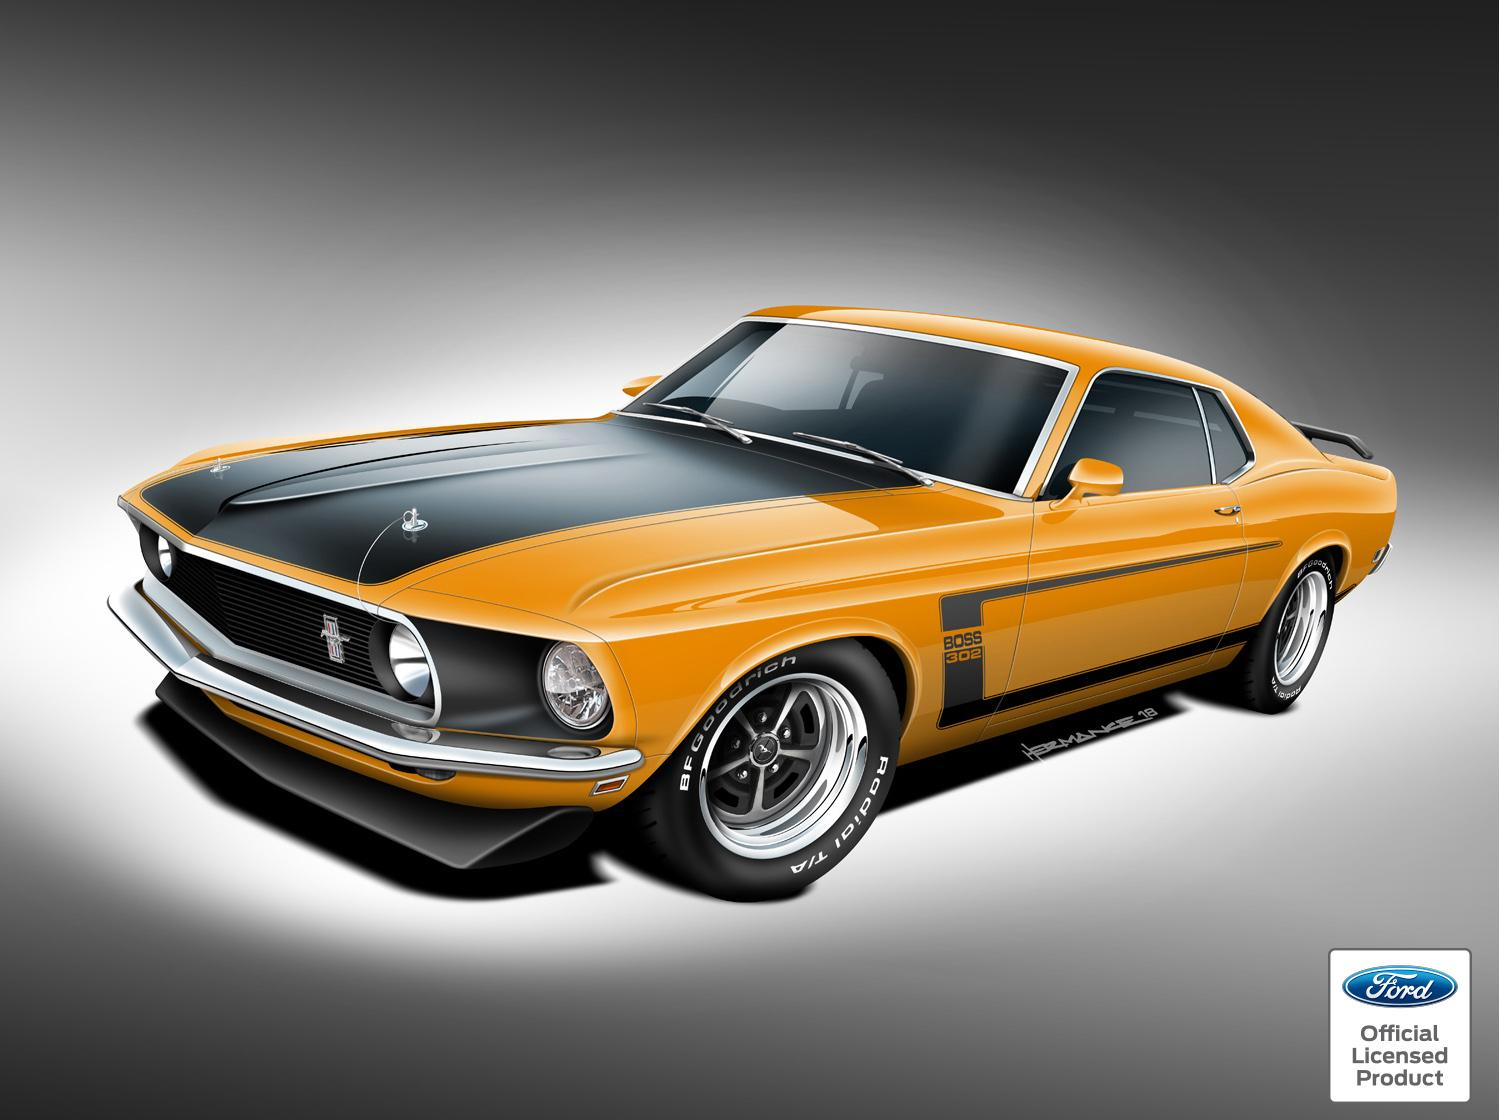 Ford-Sanctioned Mustang Boss 429 to Be Revived for 2018 SEMA Show